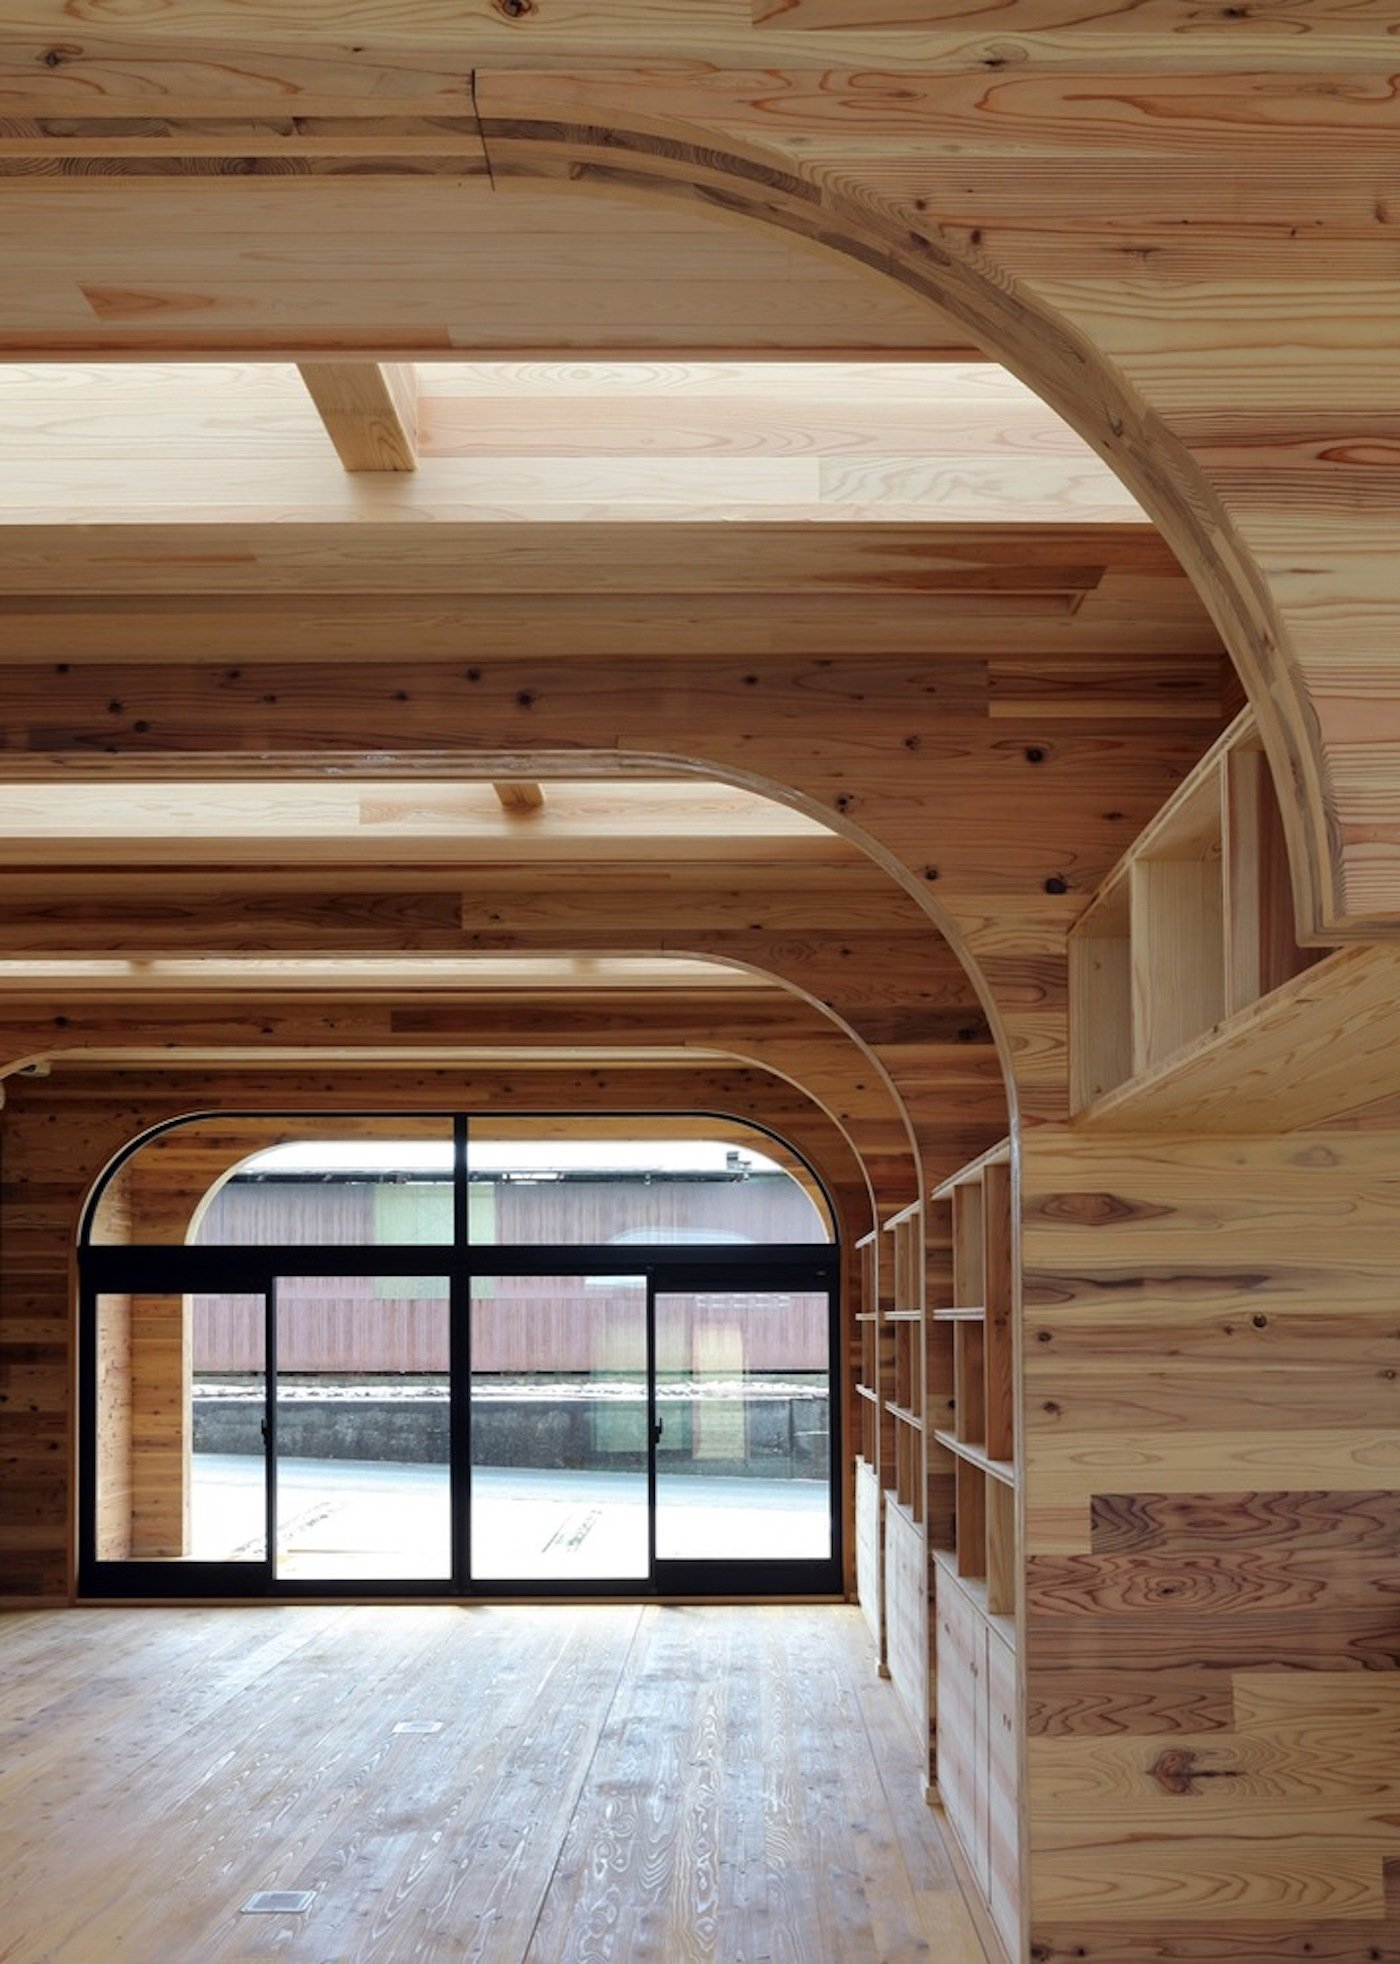 Arched CLT cross laminated timber construction